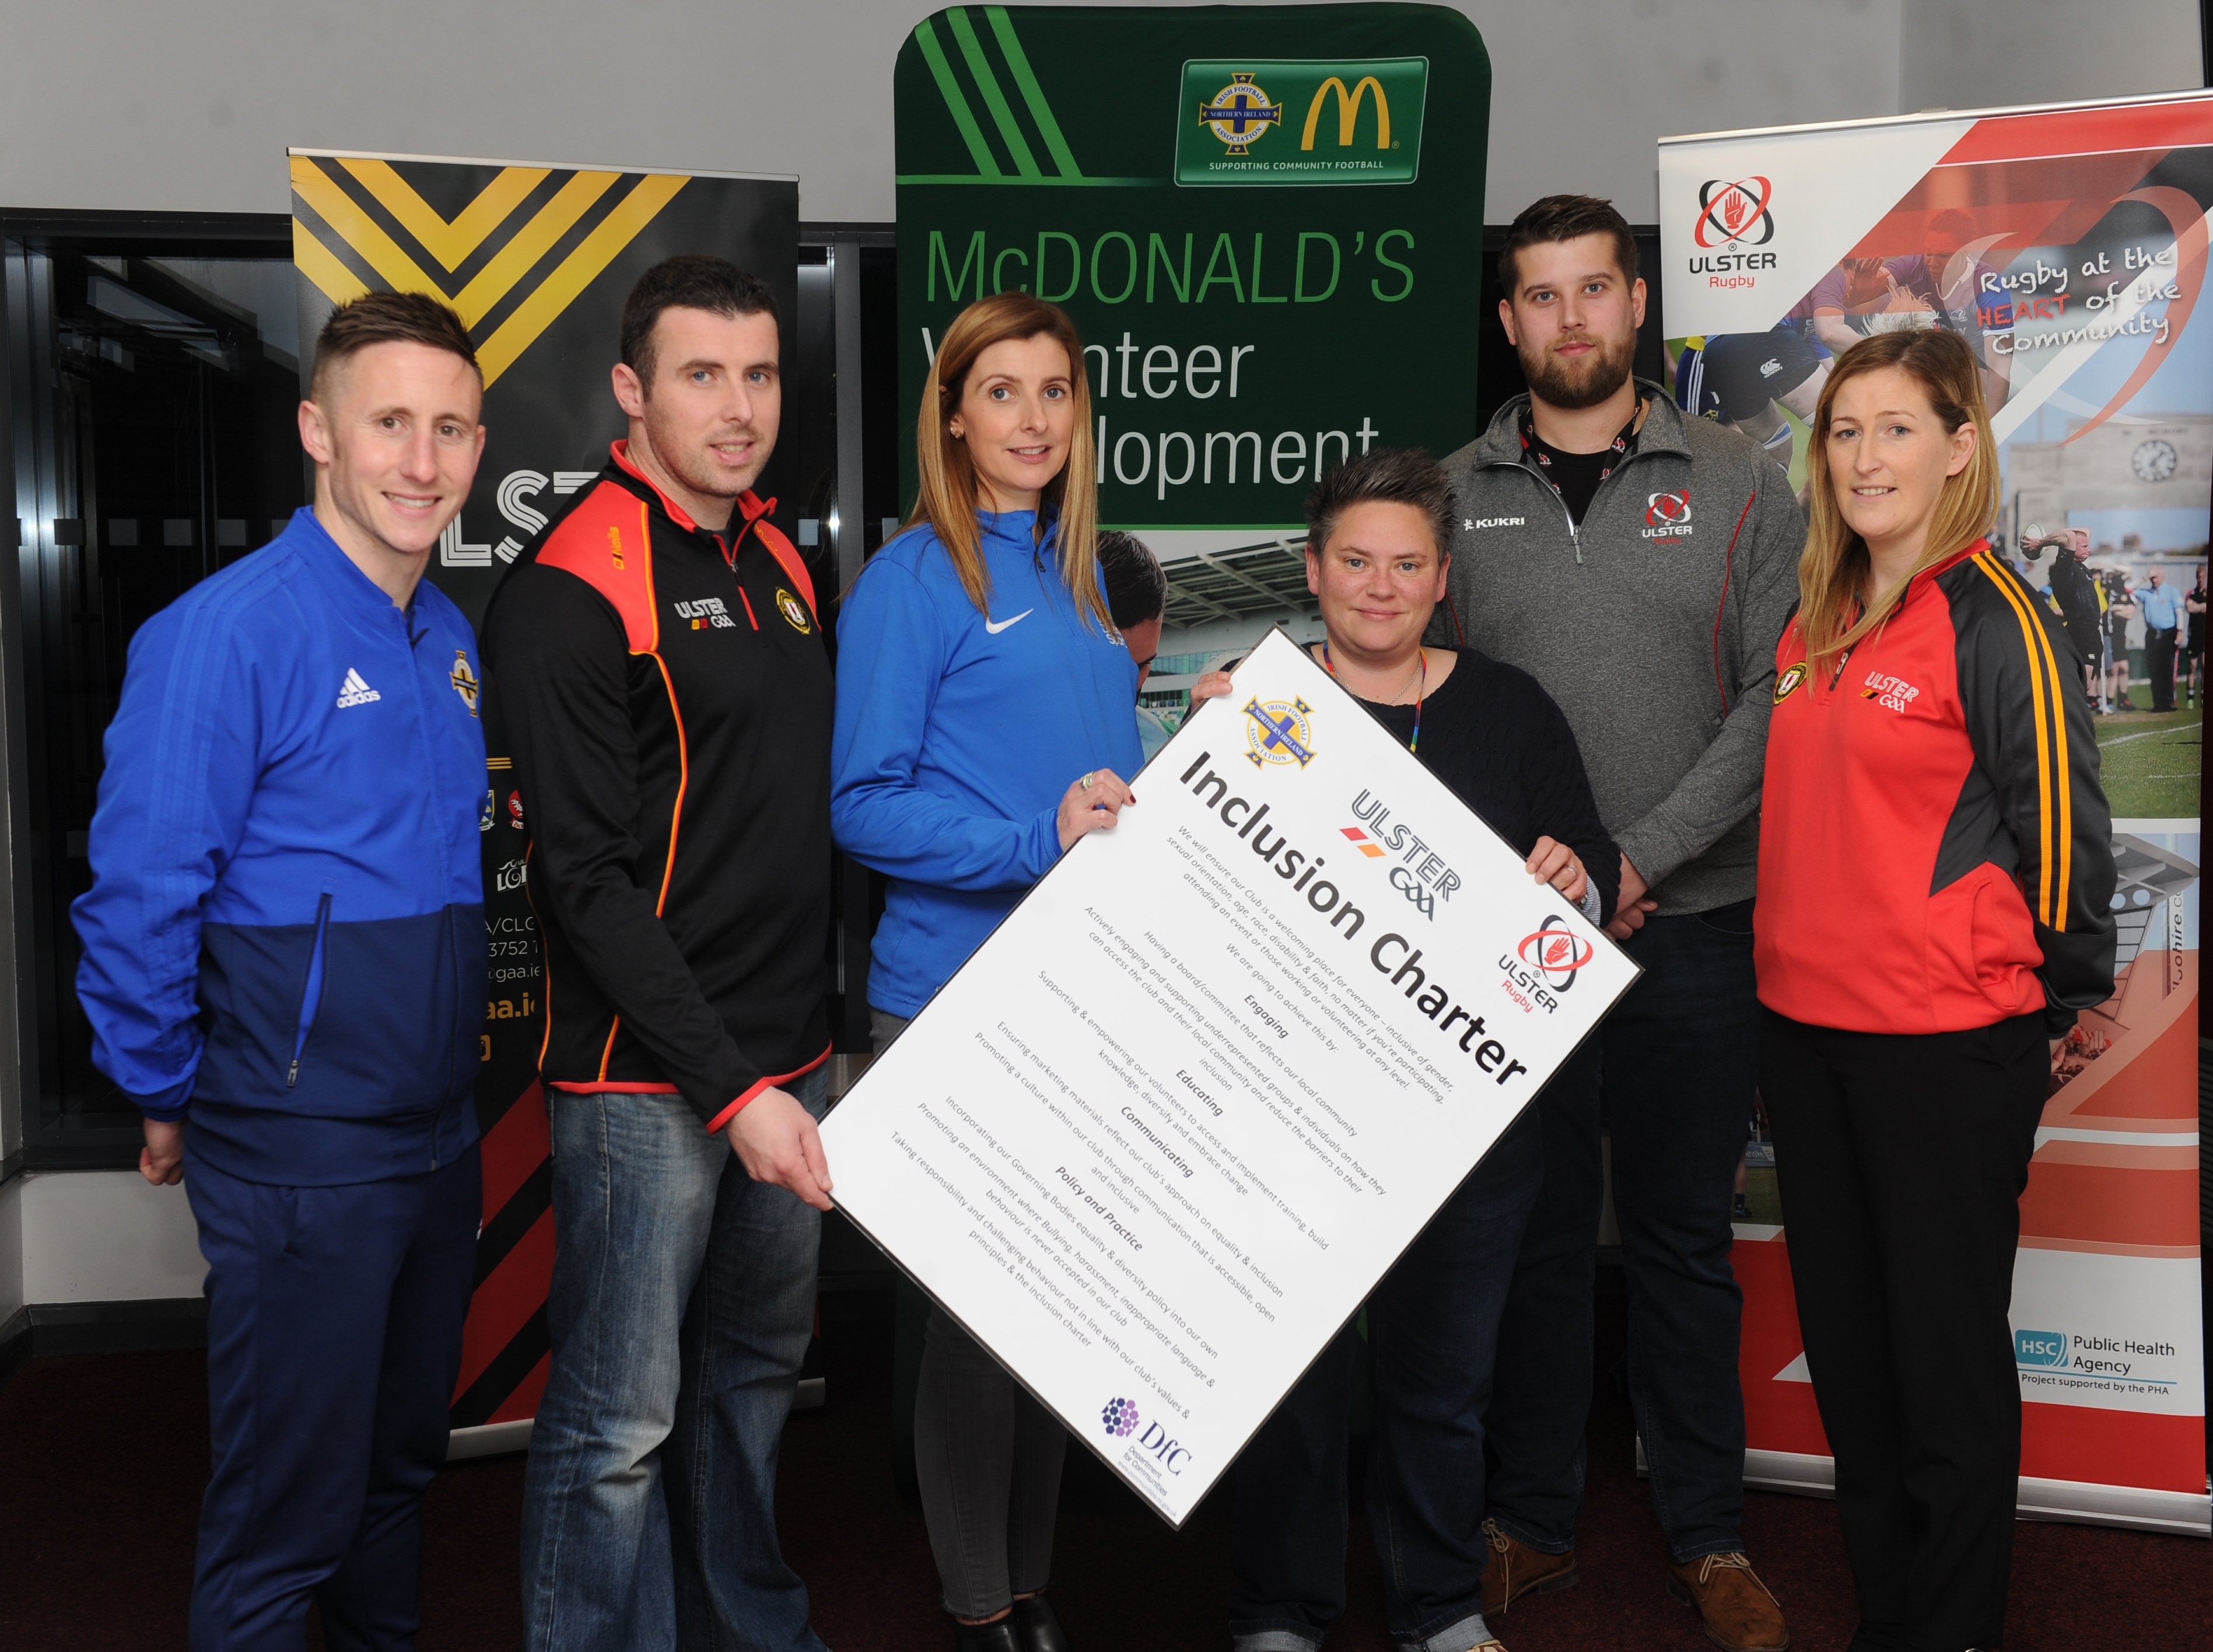 Ulster GAA take part in Multi-Sport Volunteer Forum